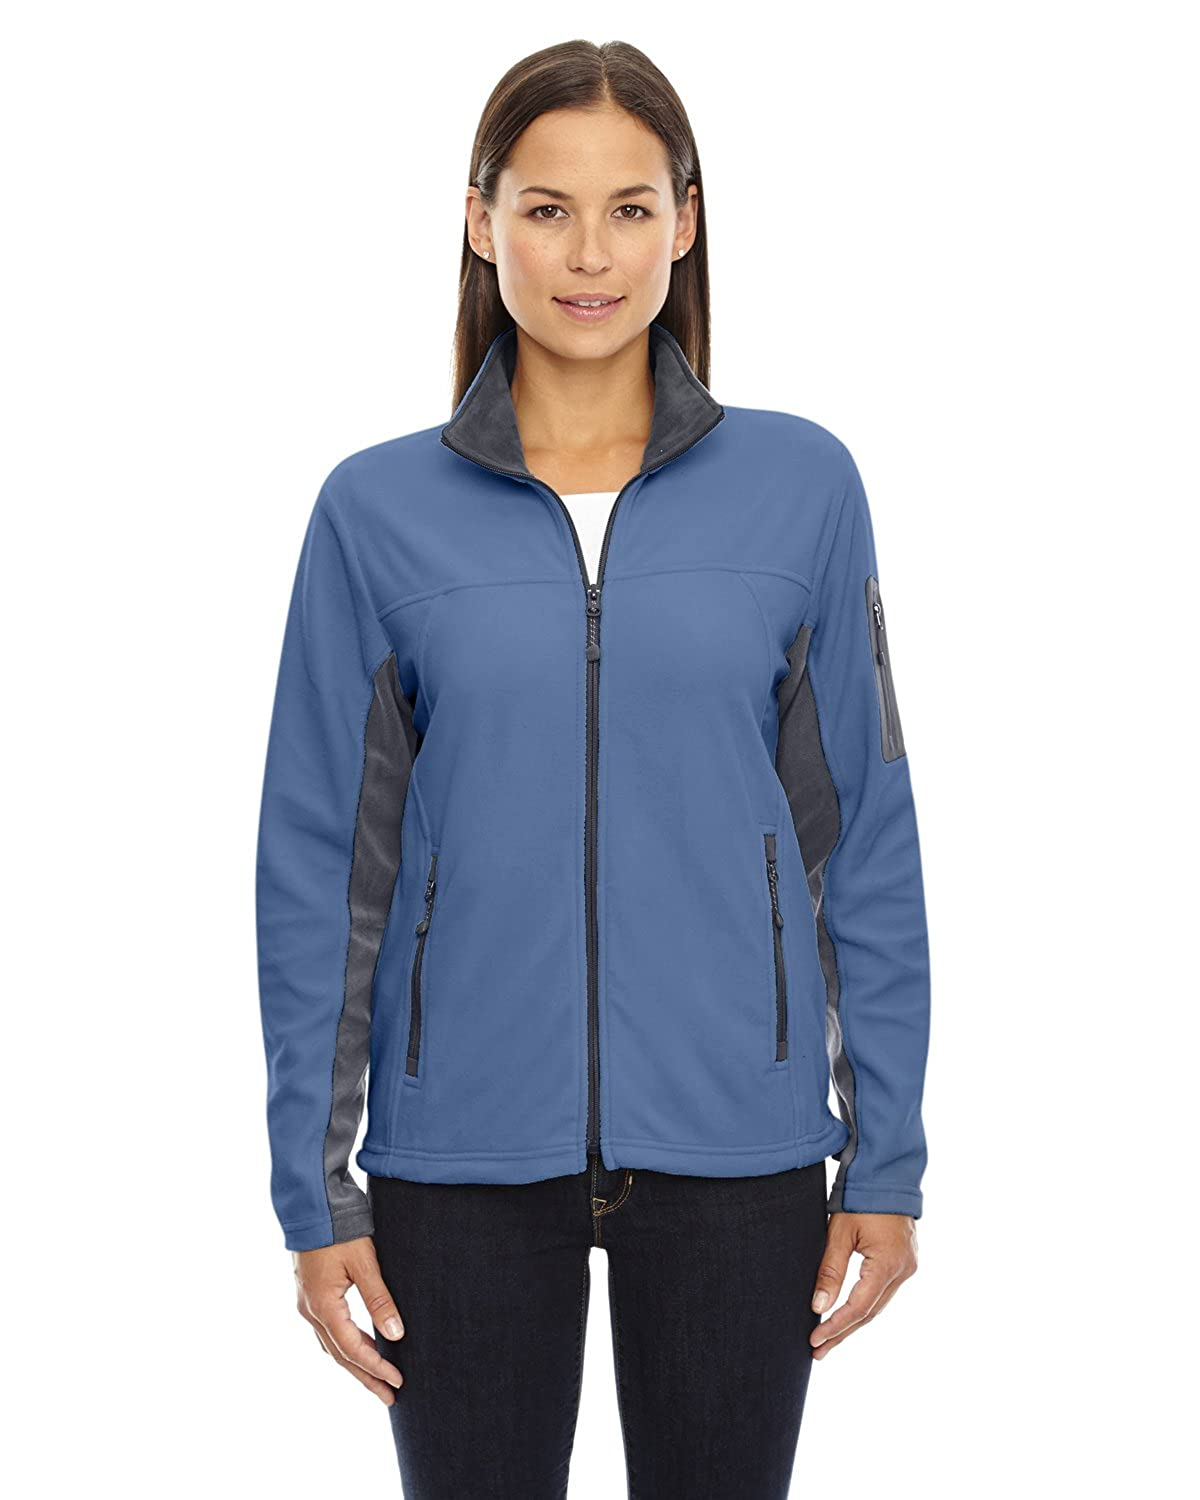 Ash City - North End Ladies' Microfleece Jacket 78048 M10123